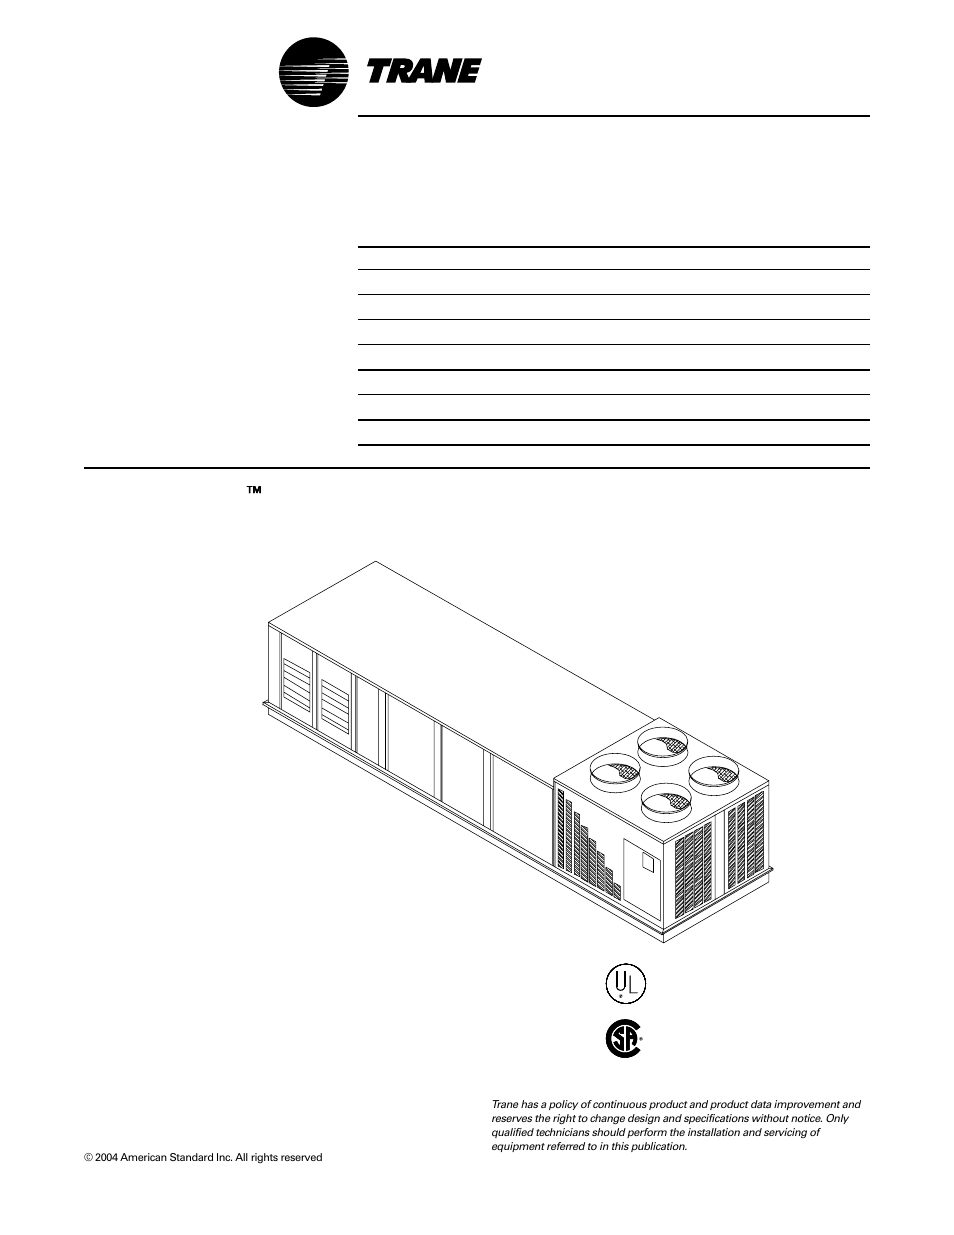 Intellipak Wiring Diagram Page 4 And Schematics Trane Commercial Diagrams 3d Scroll Images Gallery